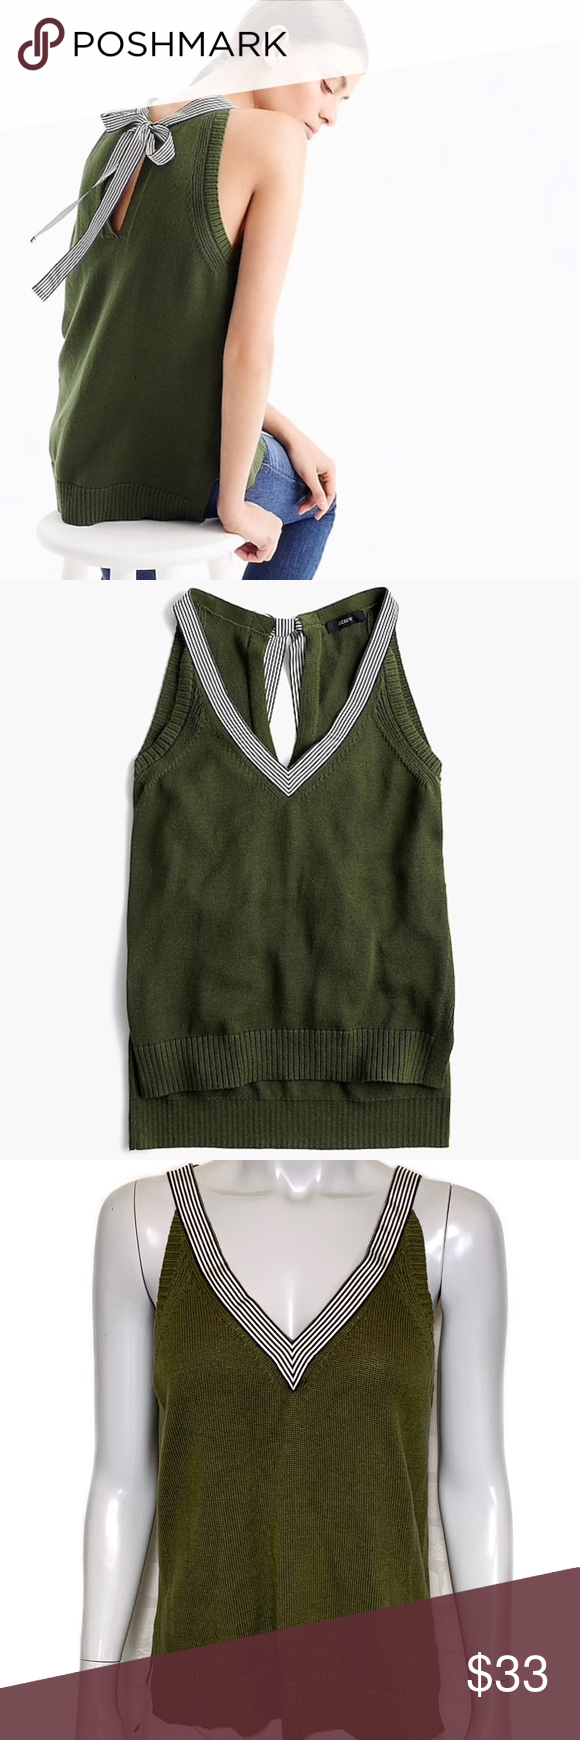 0606af5317ada  j. crew  sleeveless sweater with grosgrain trim Sleeveless v-neck pullover  sweater